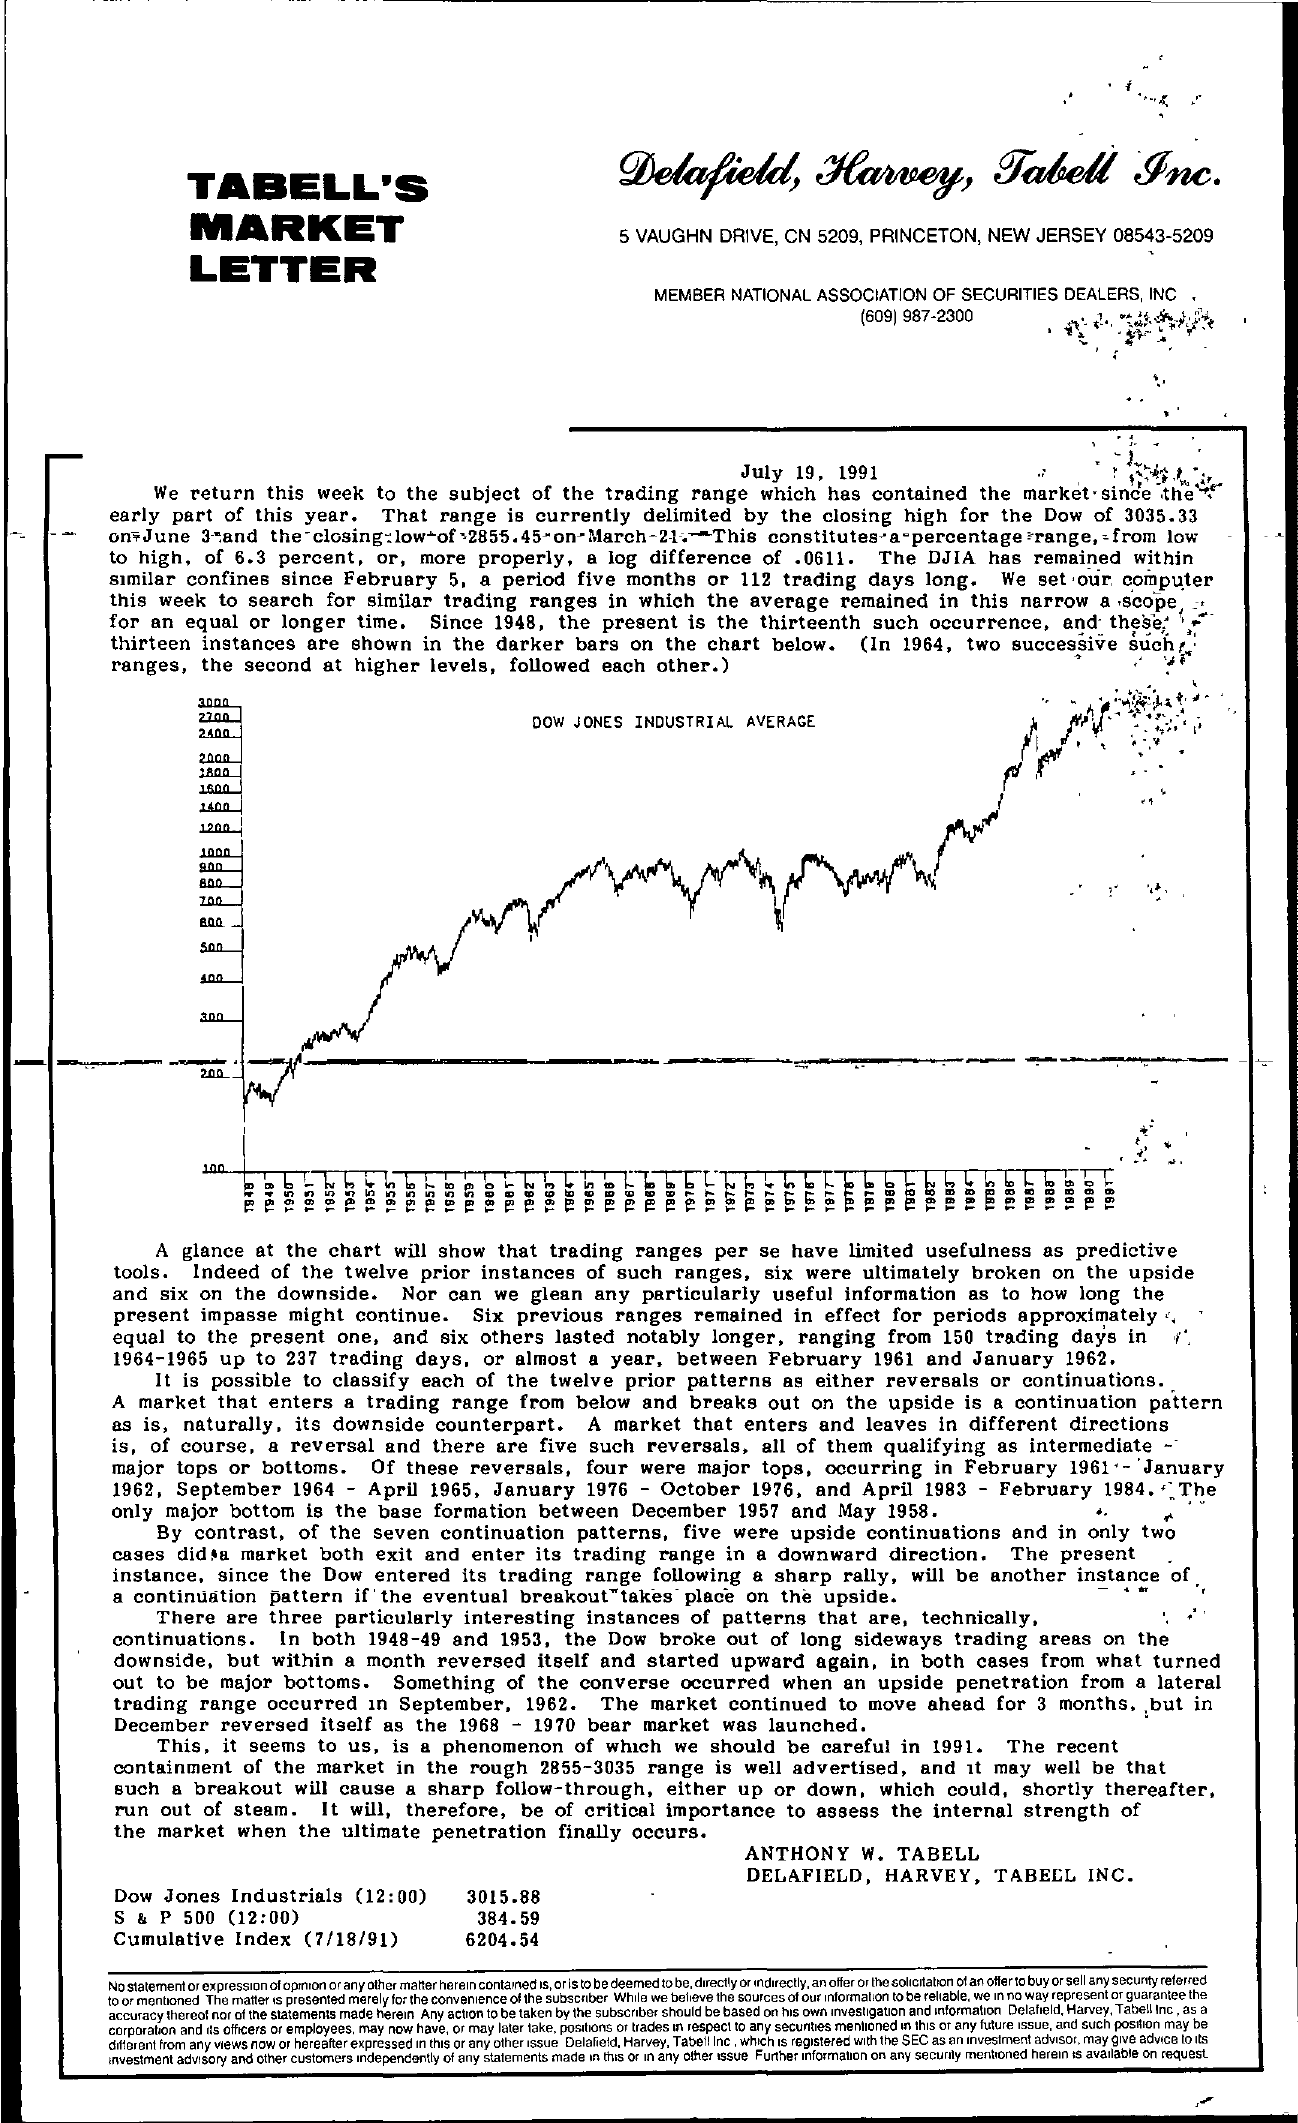 Tabell's Market Letter - July 19, 1991